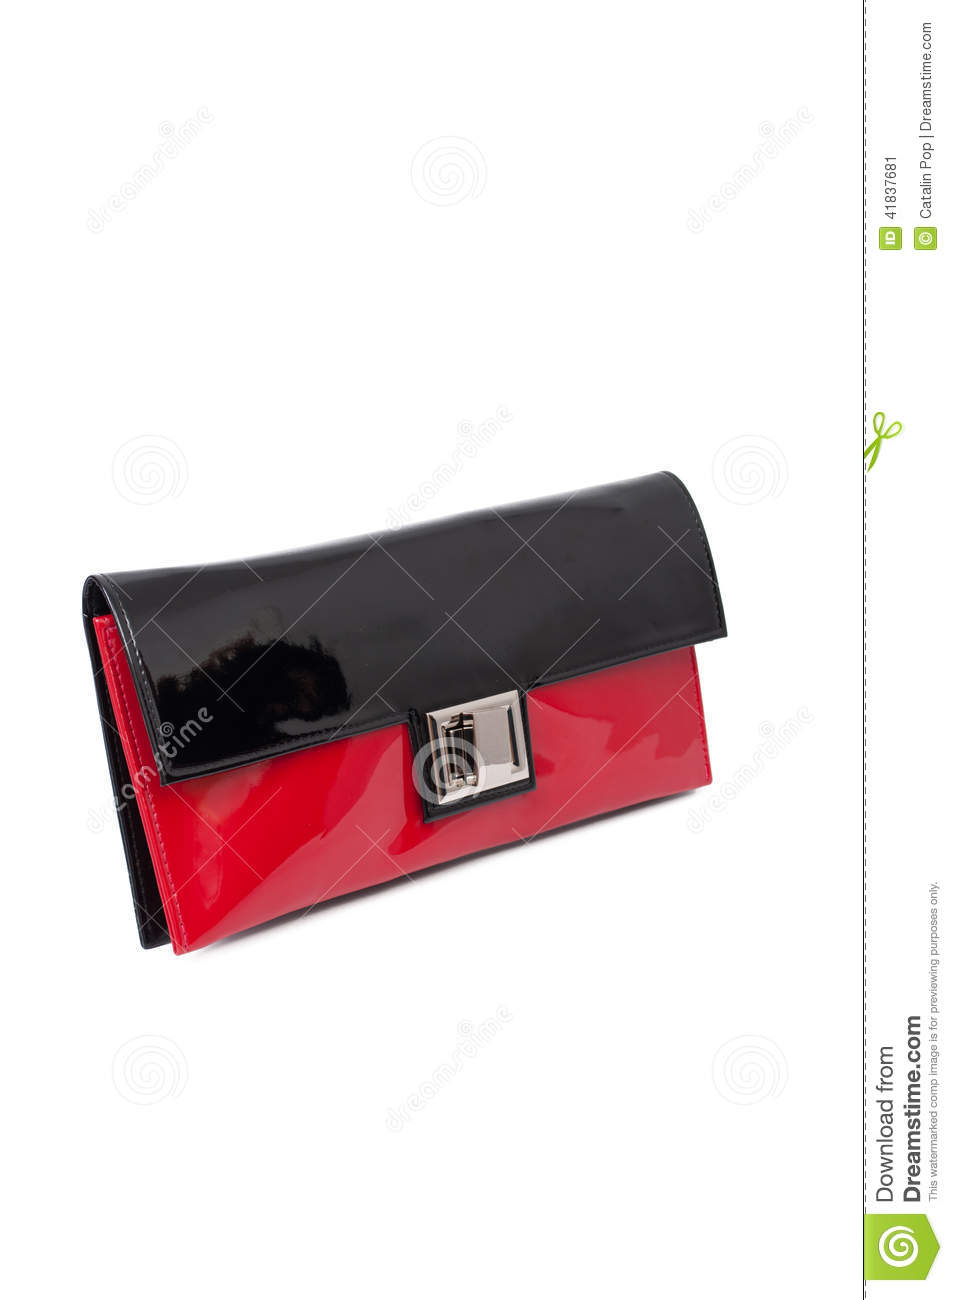 where can i buy a prada bag - Black And Red Purse Stock Photo - Image: 41837681